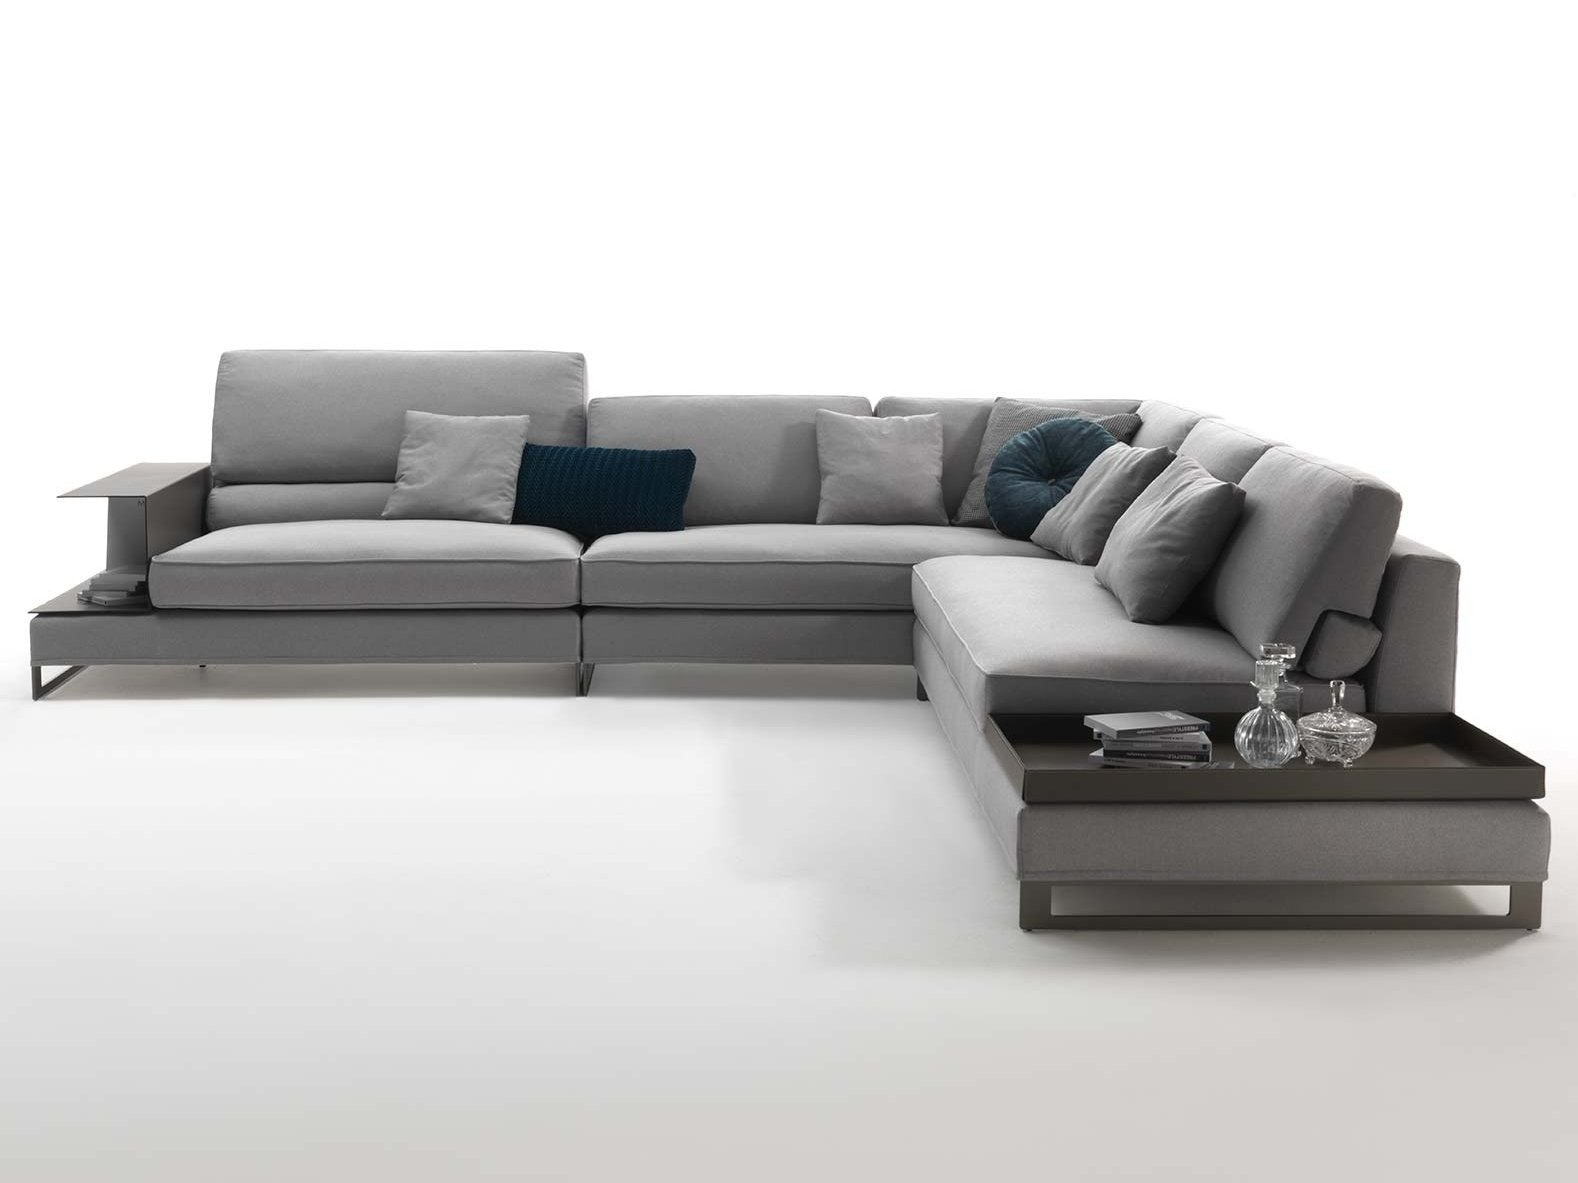 Sled base sectional fabric sofa DAVIS CASE by FRIGERIO ...